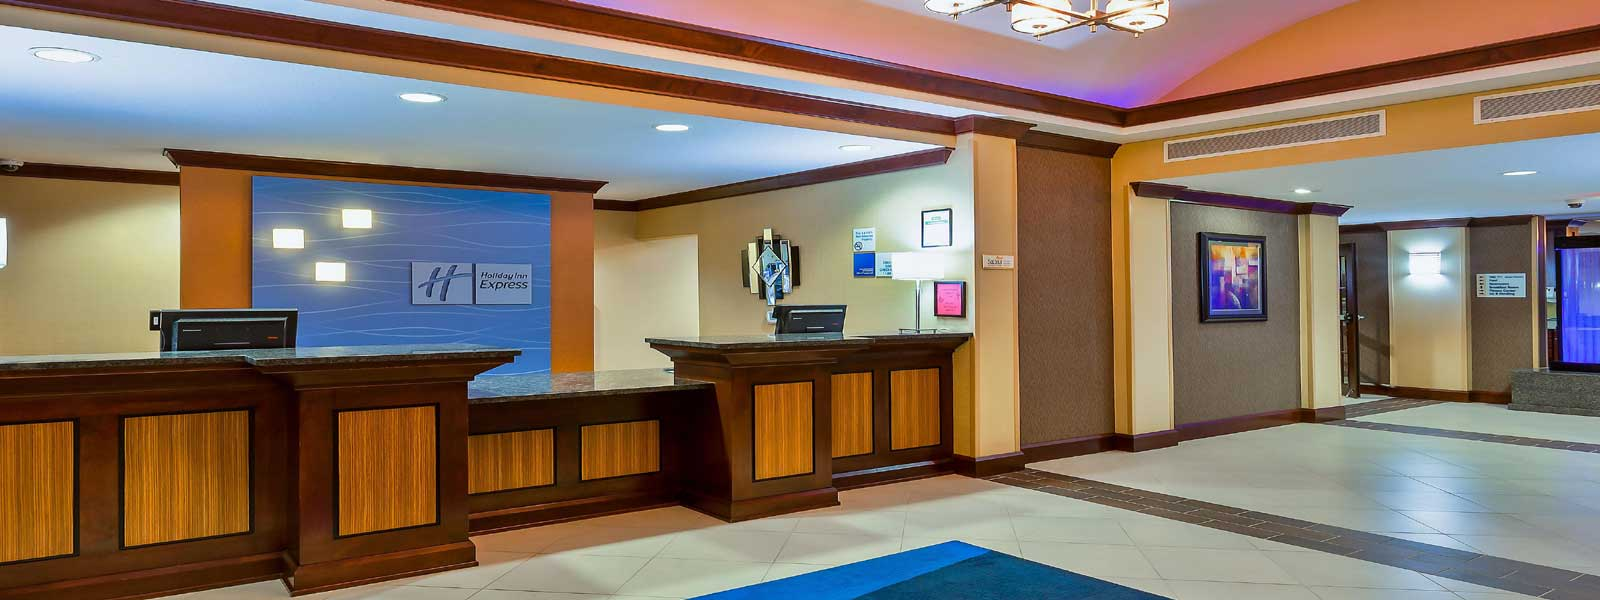 Discount Budget Cheap Affordable Hotels Motels Holiday Inn Express & Suites